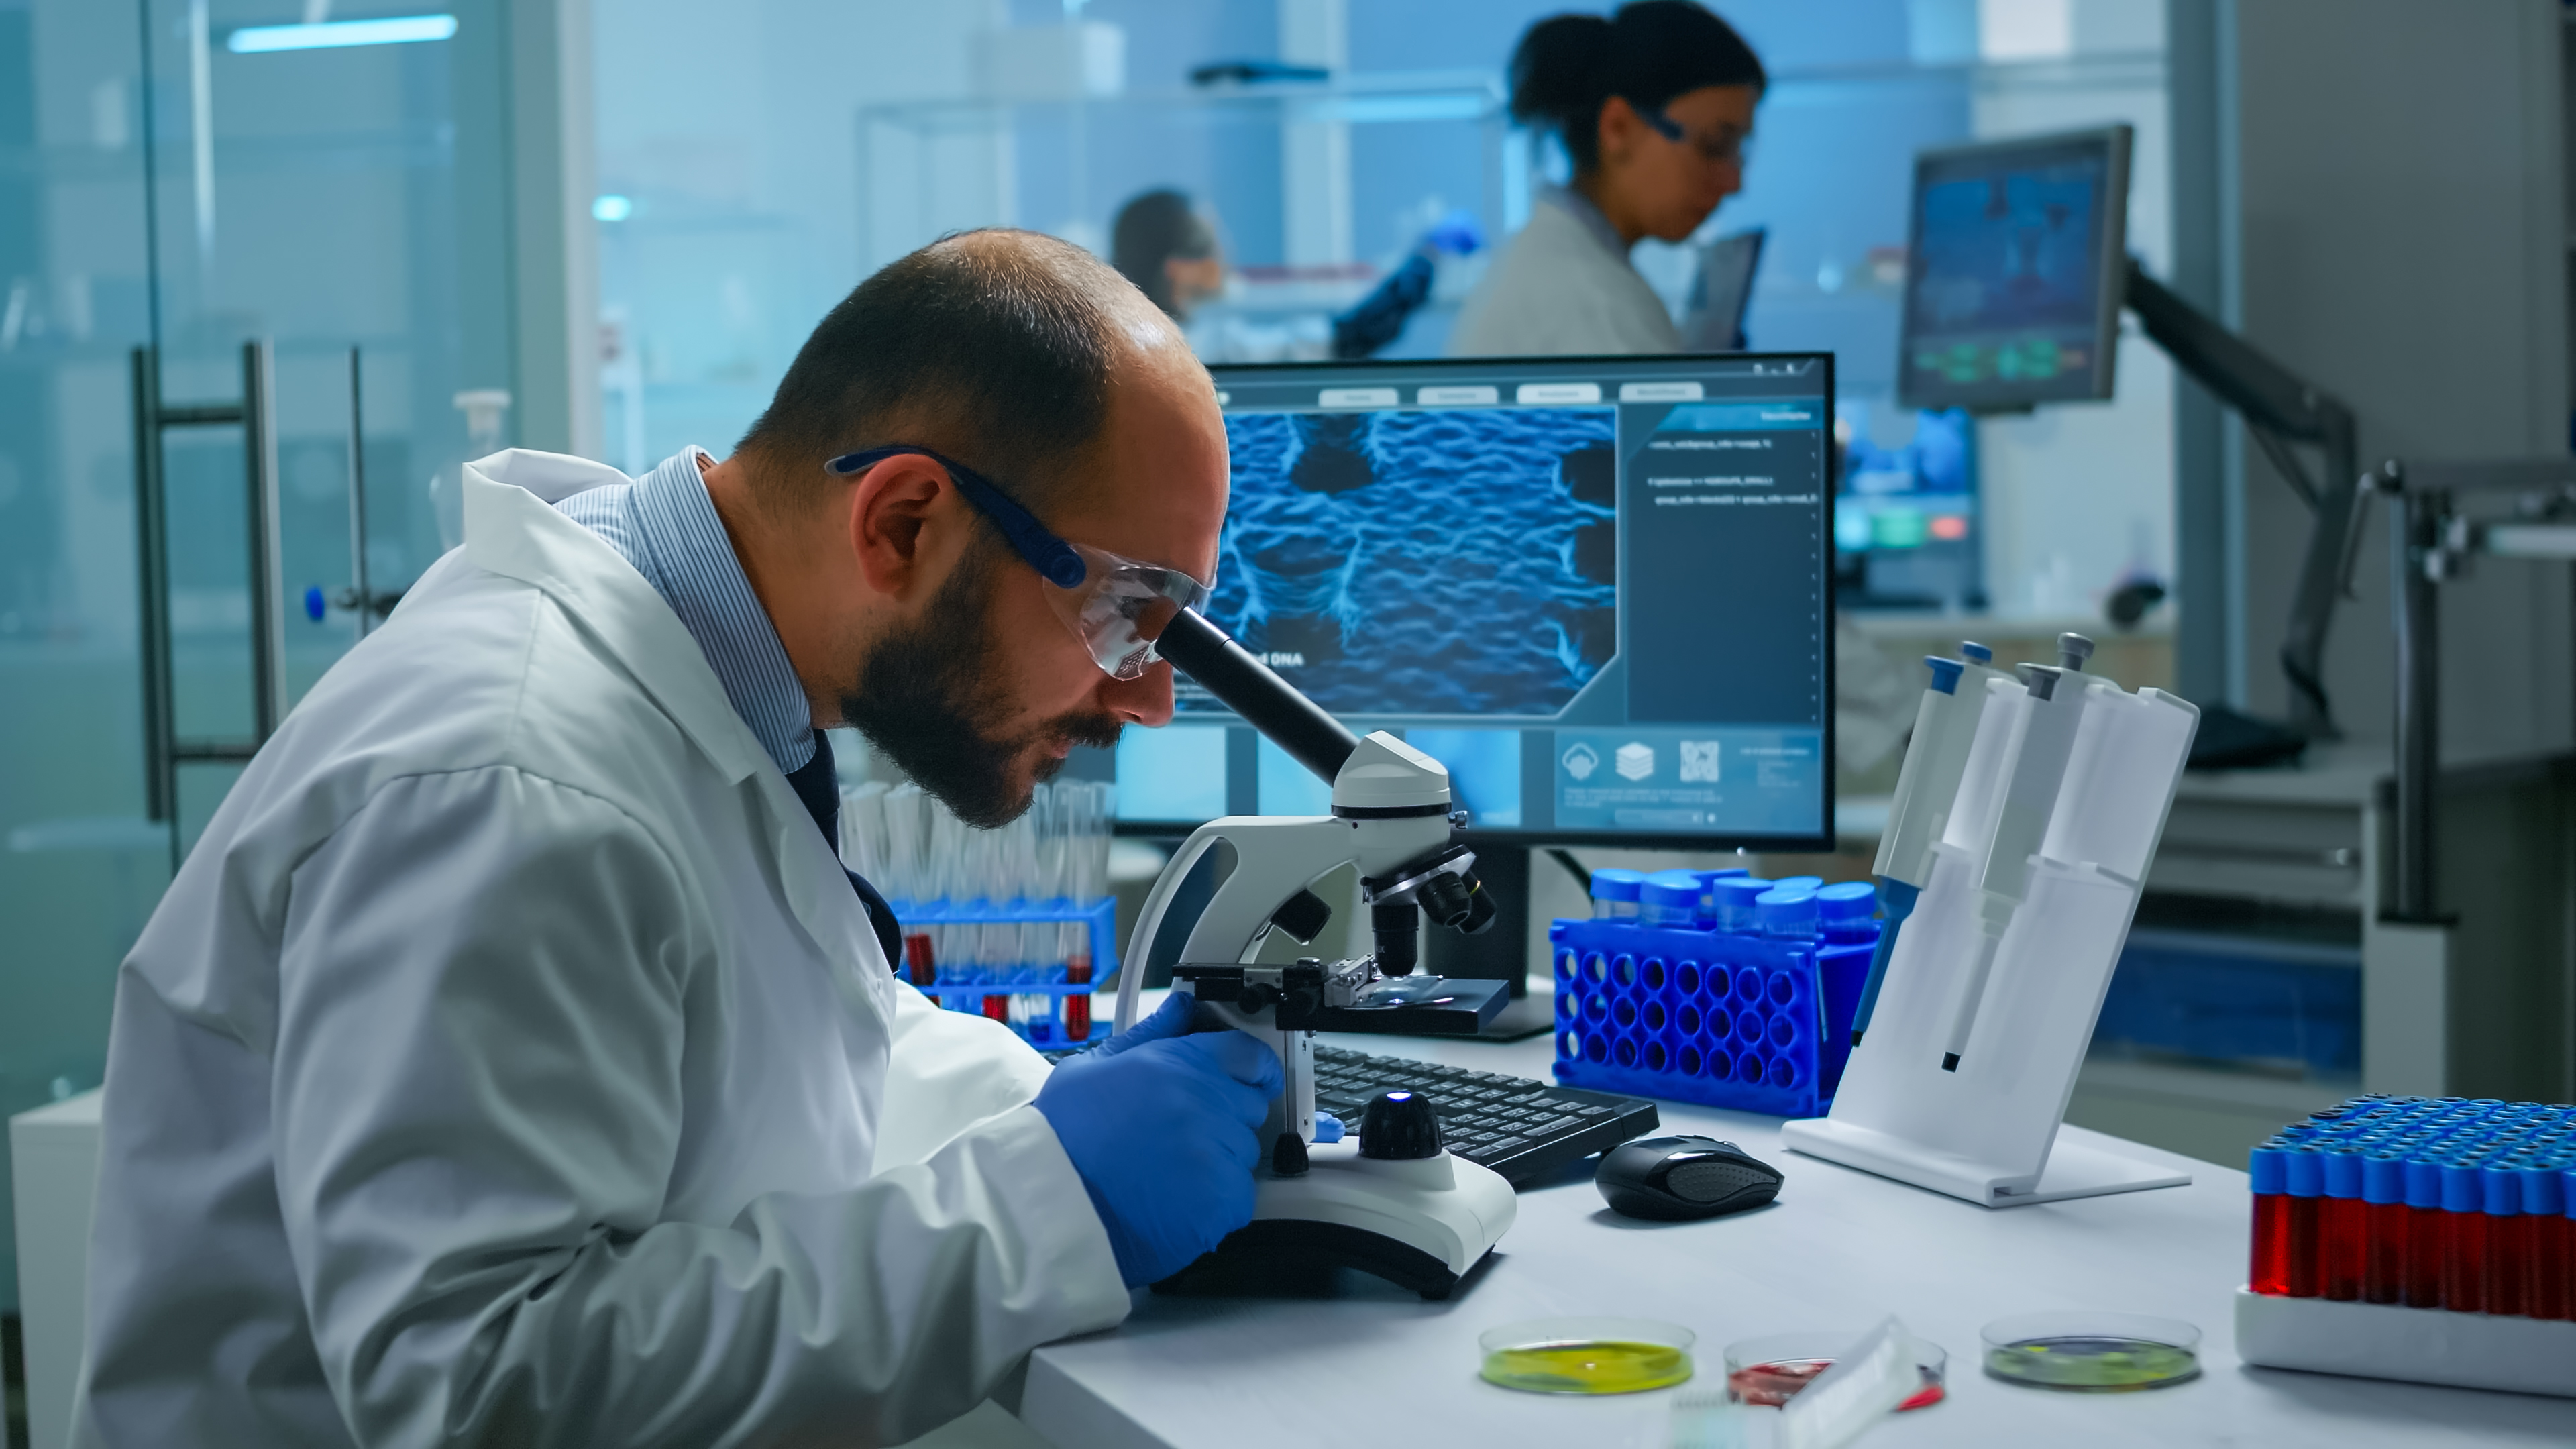 medical-research-scientist-conducting-vaccine-development-under-digital-microscope-in-a-biological-applied-science-laboratory